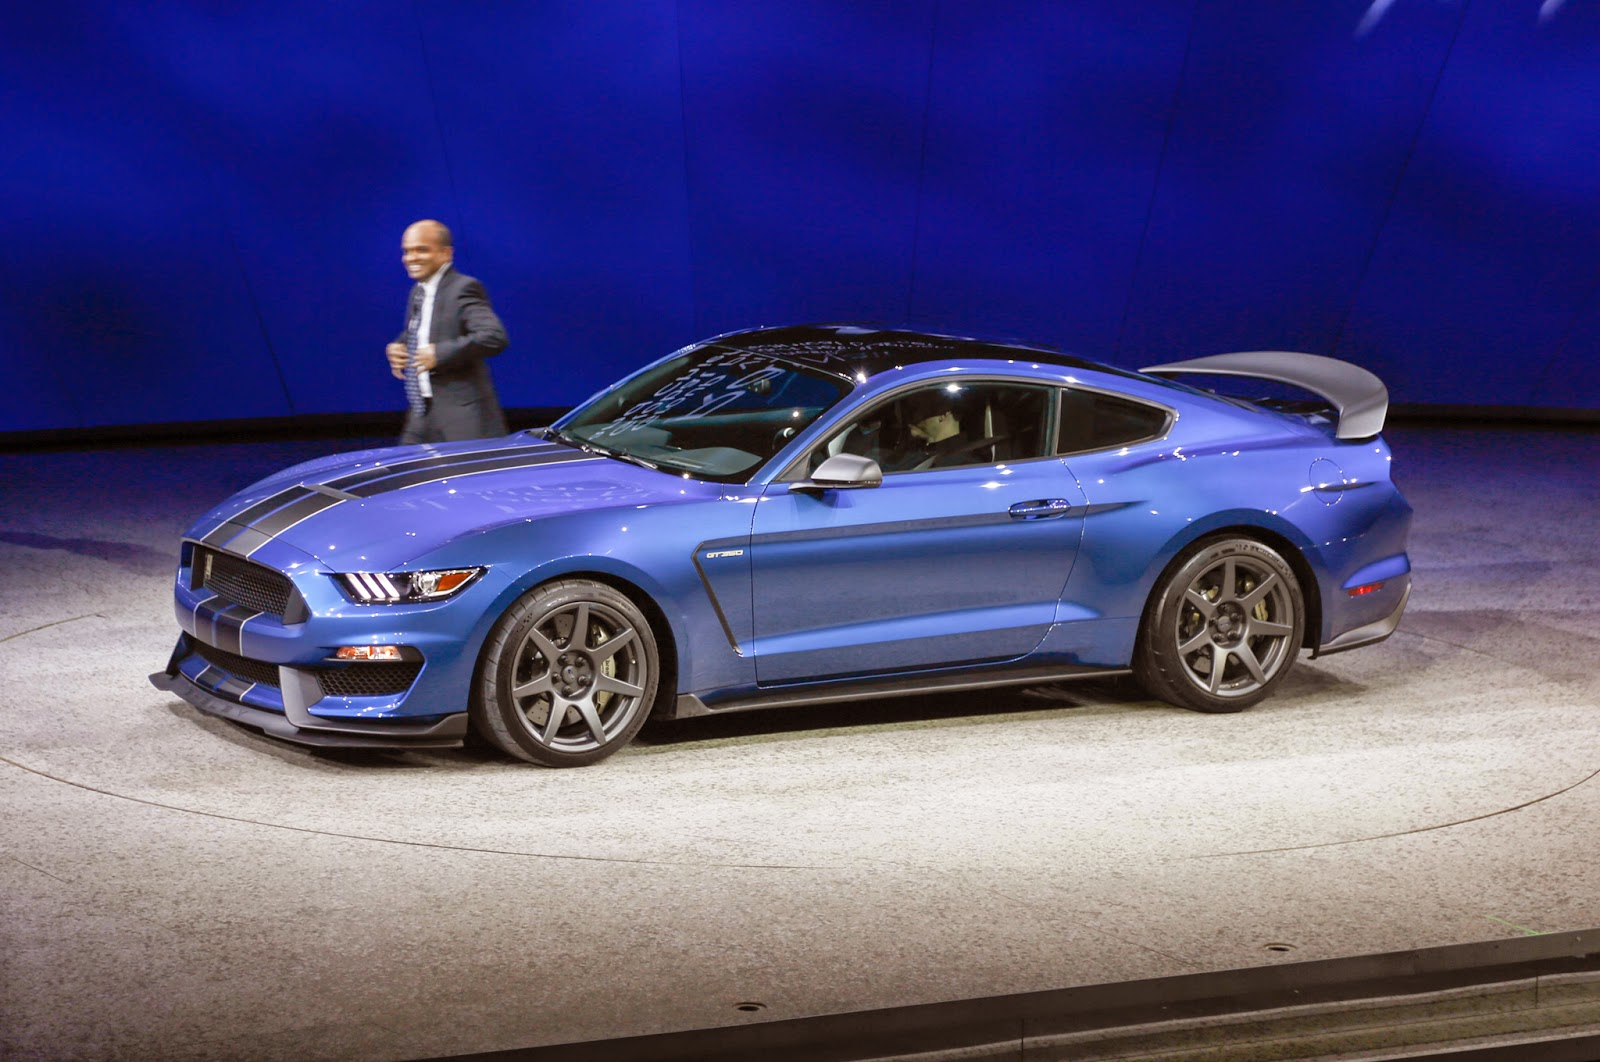 Mobil Ford Shelby GT350R Mustang Dibuat Unlimitid